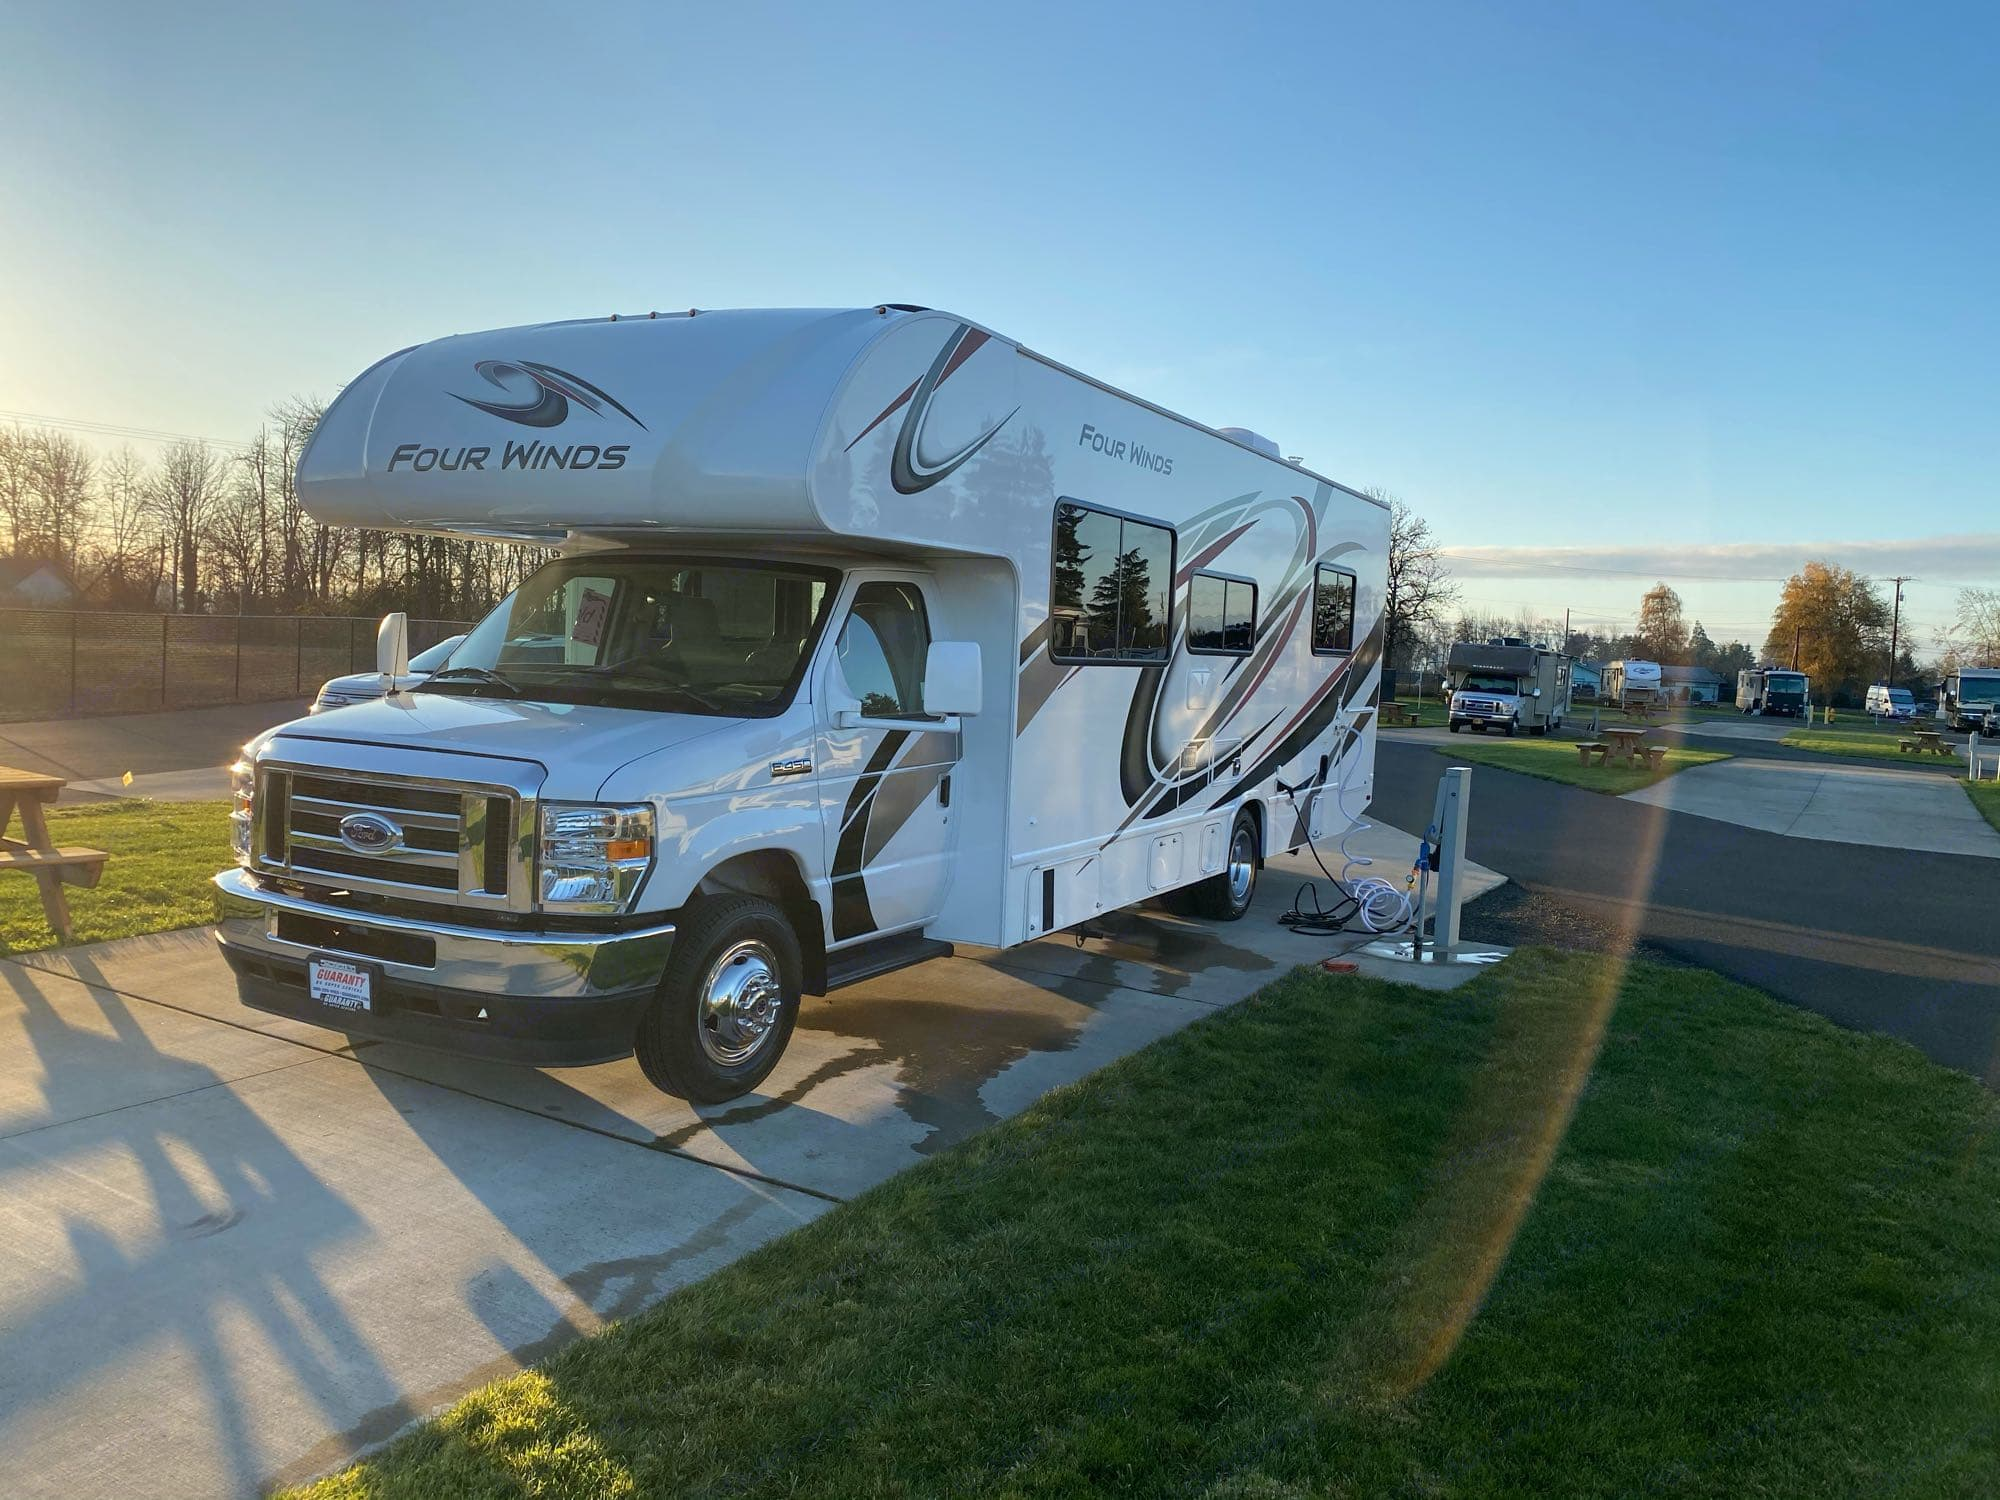 The front view of Hanna, a 2021 Thor Four Winds 28a. no Slideouts, 29 foot Class C RV. easy to drive!. Thor Motor Coach Four Winds 2021